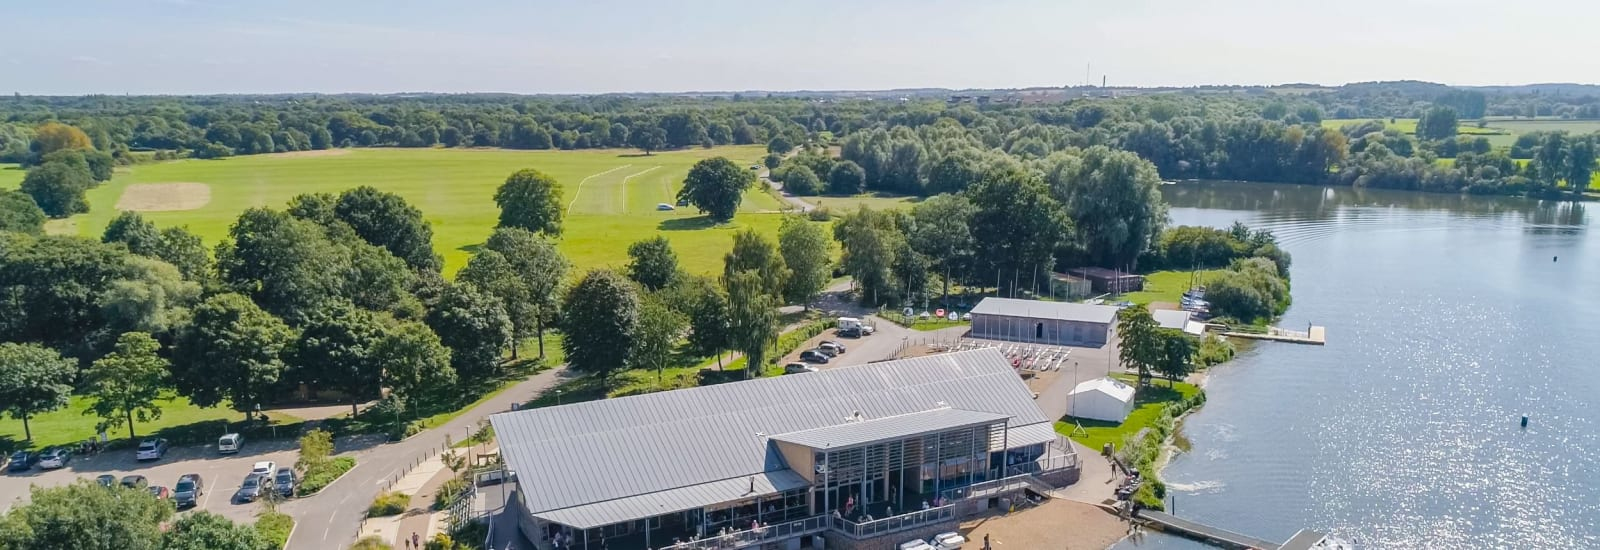 aerial view of Watersports centre